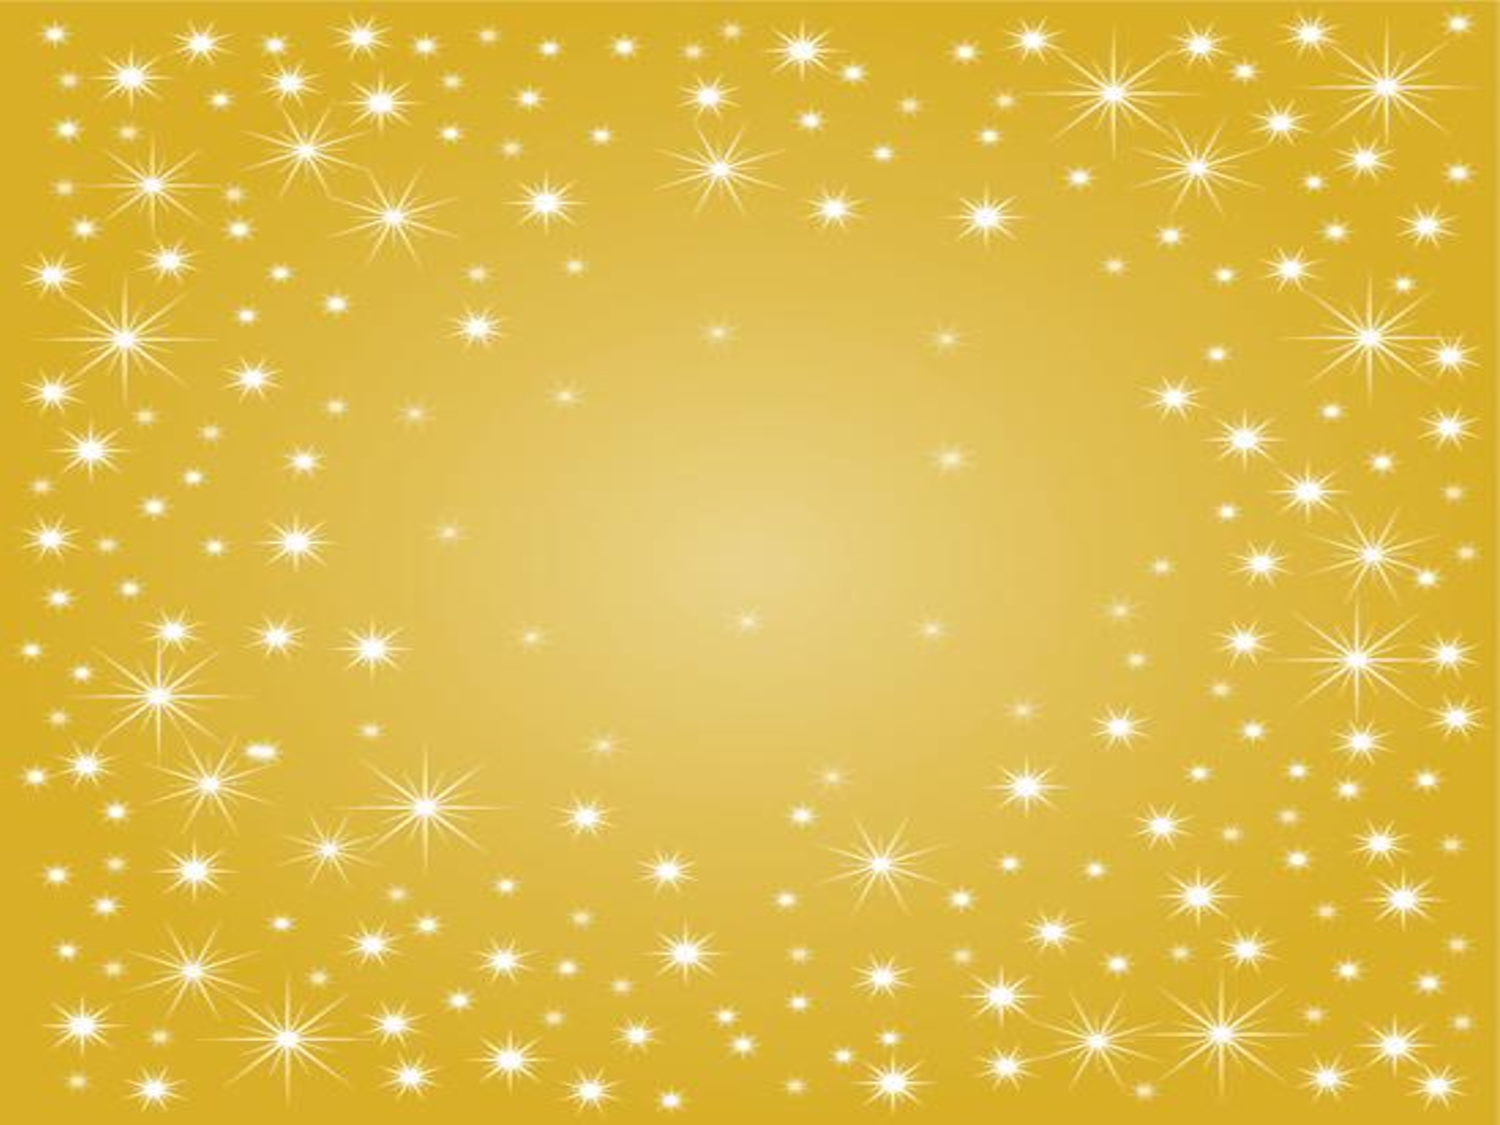 Free Gold Cliparts Background, Download Free Clip Art, Free.